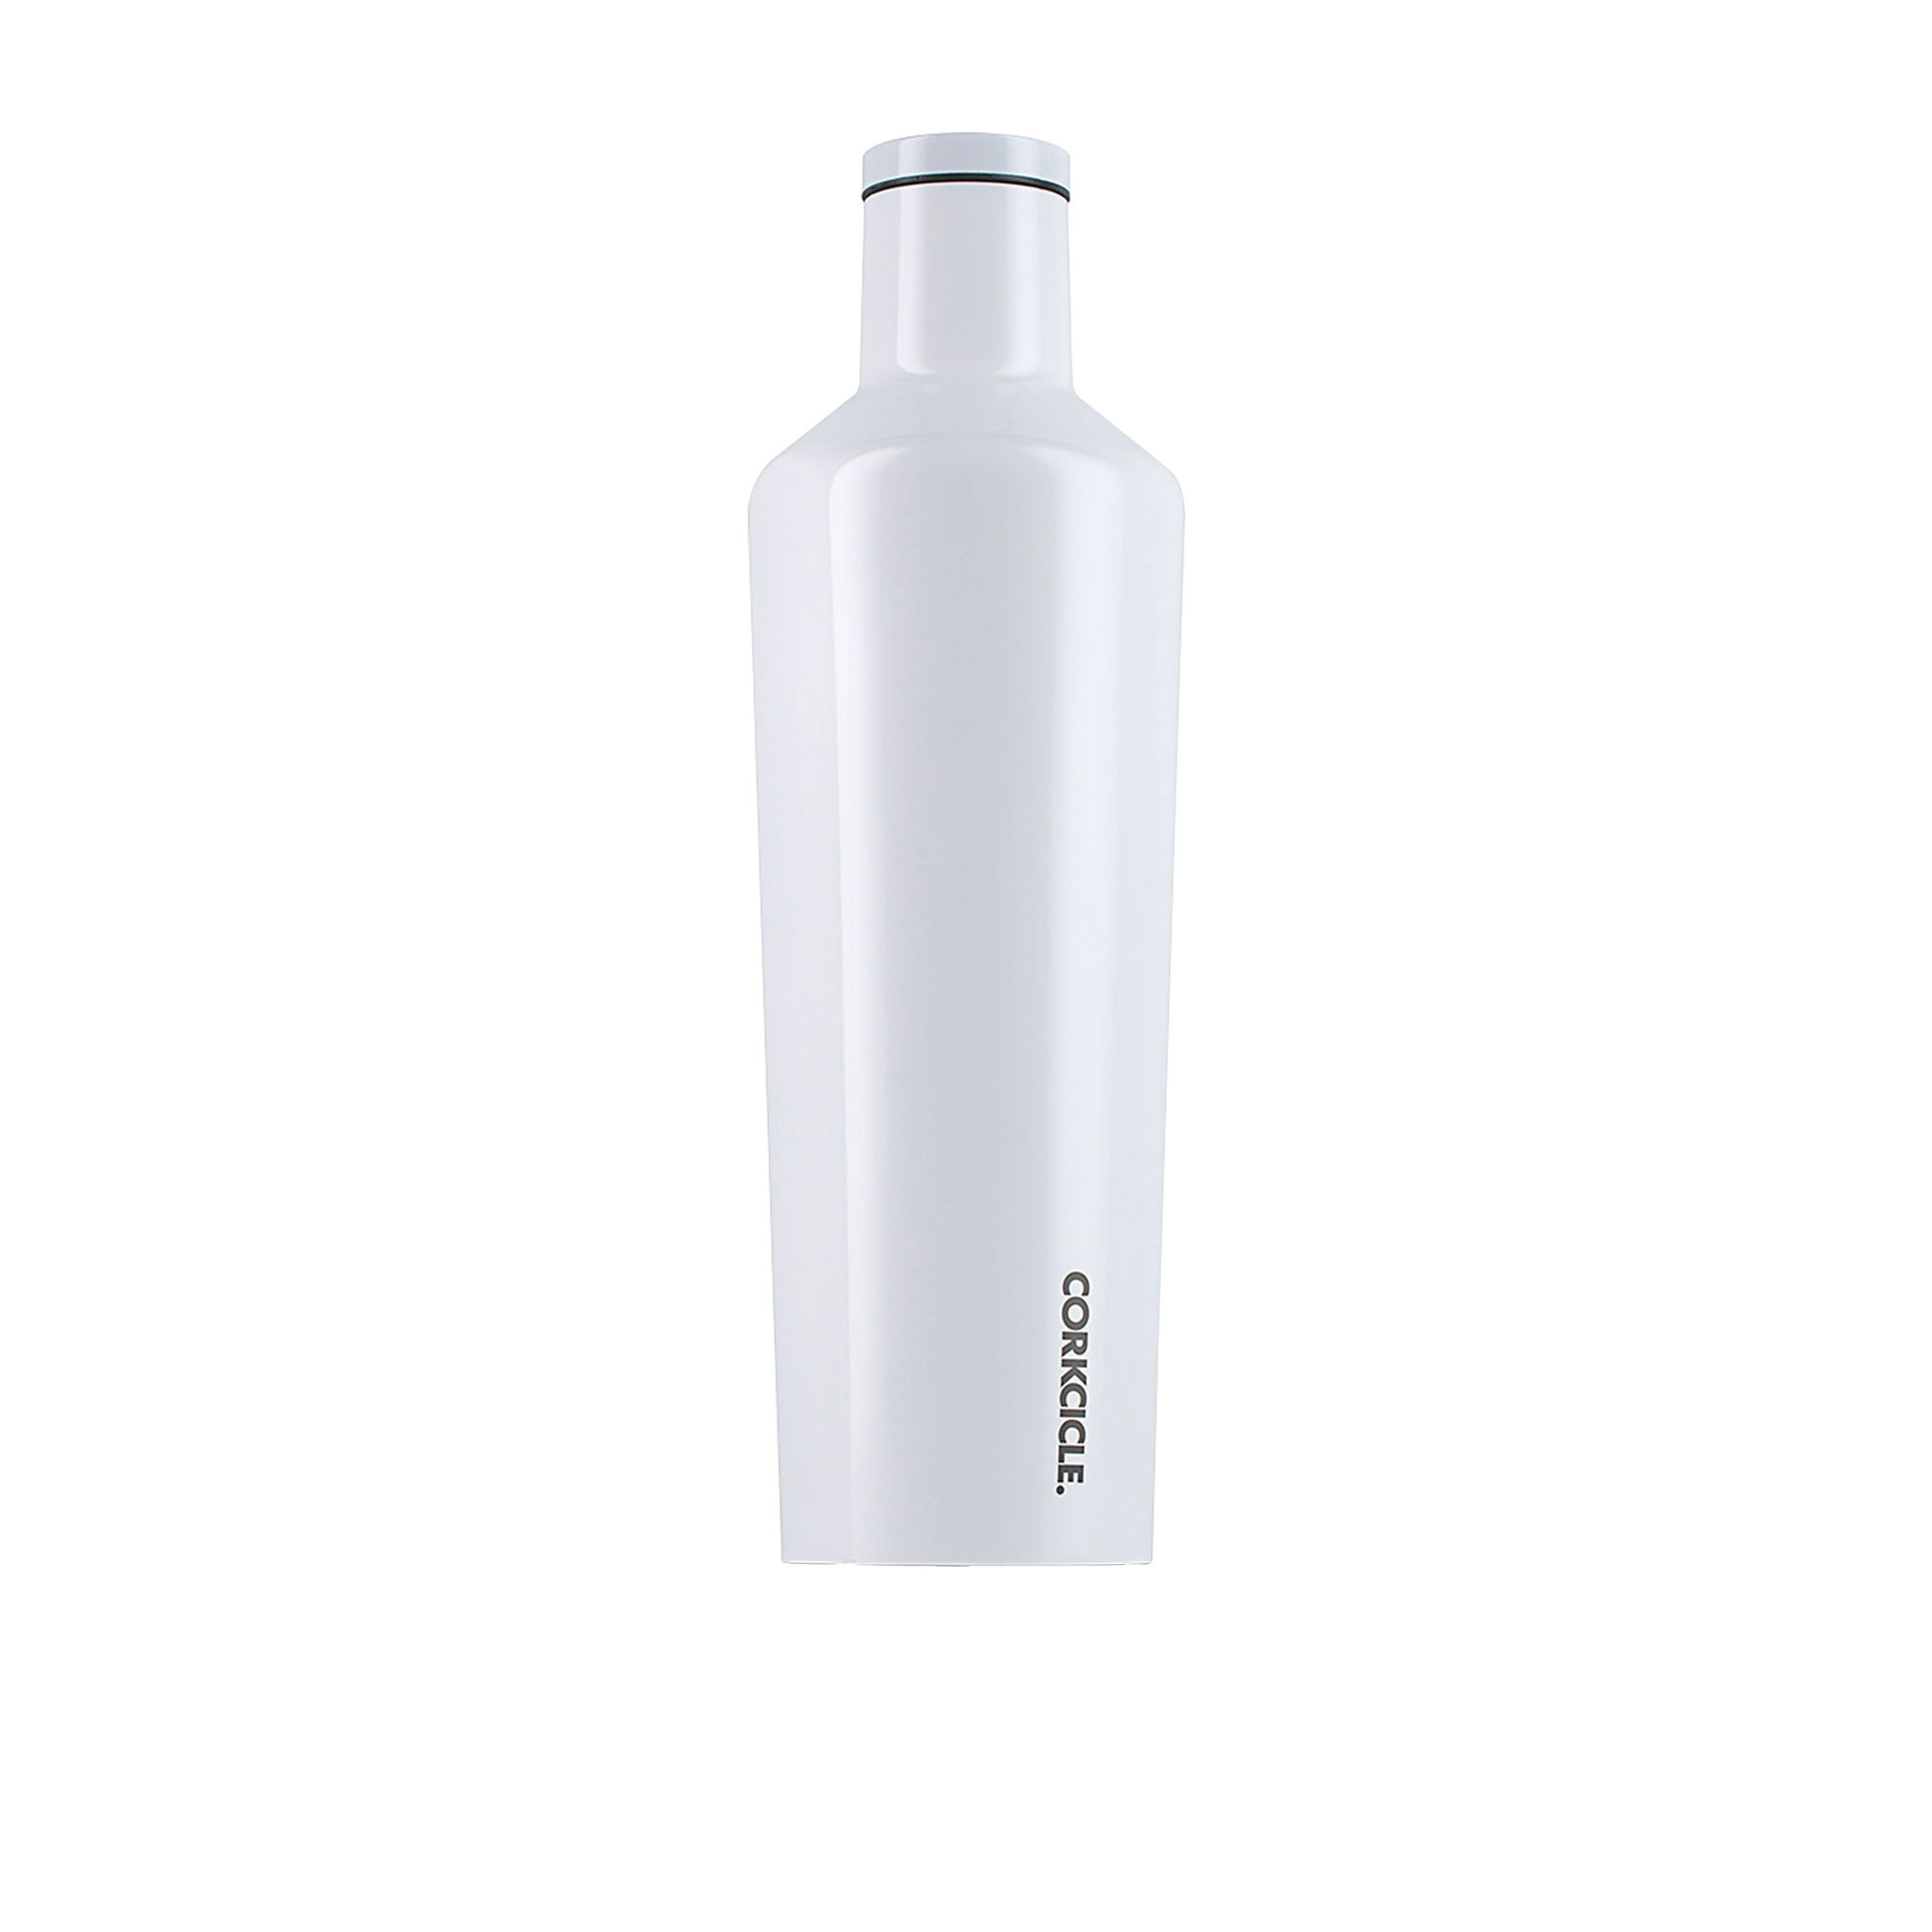 Corkcicle Dipped Canteen Insulated Drink Bottle 750ml Modernist White